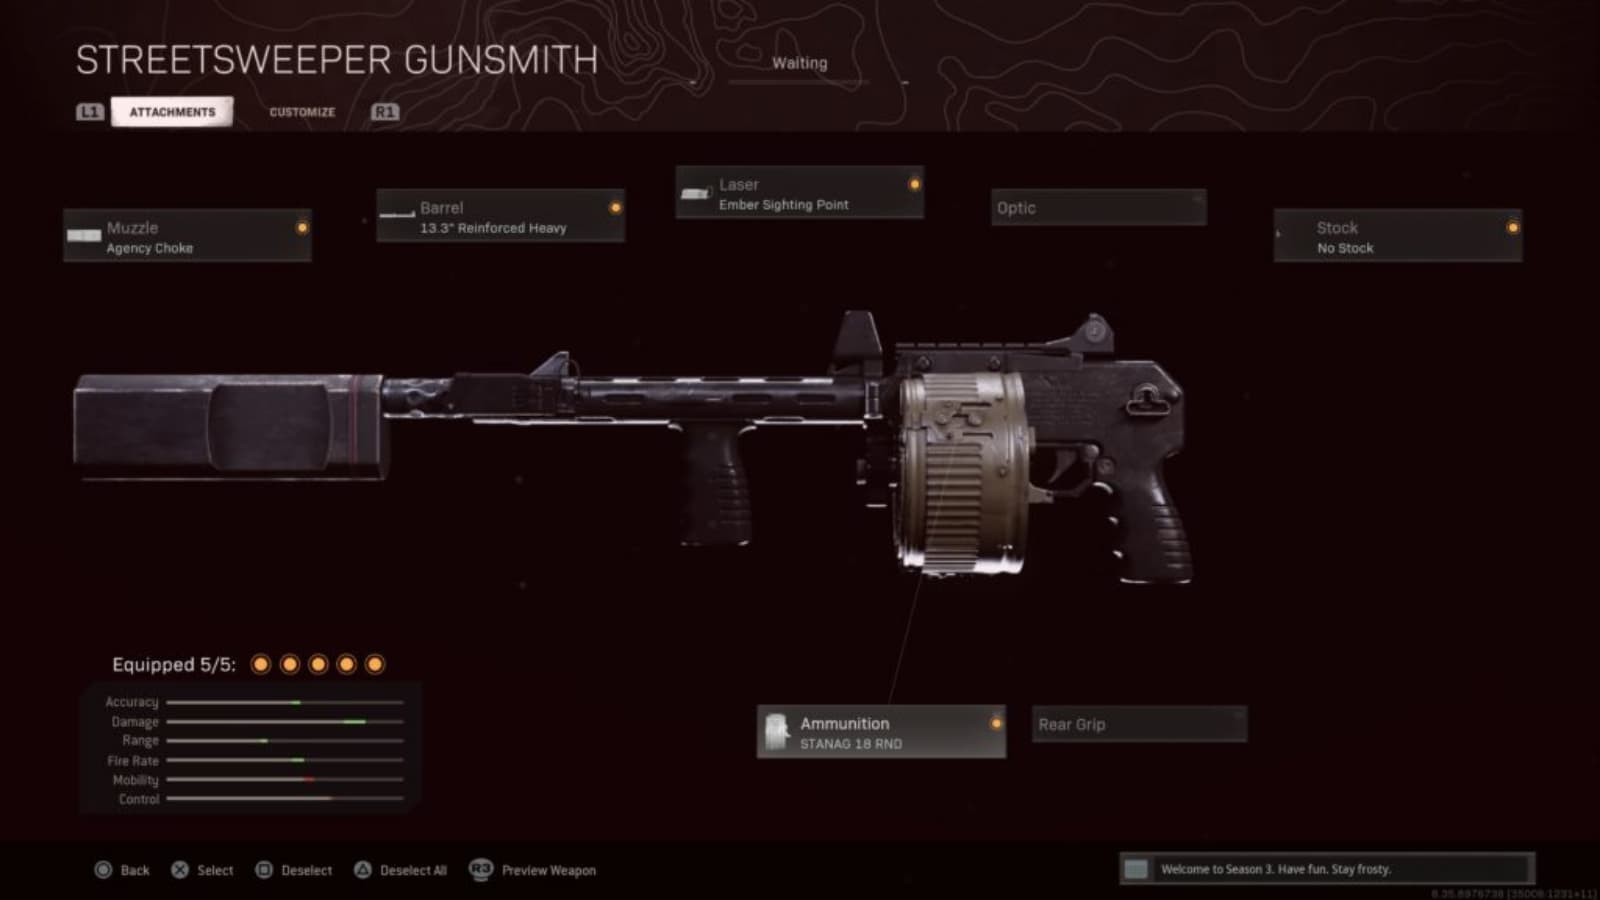 The Best Streetsweeper Warzone Loadout